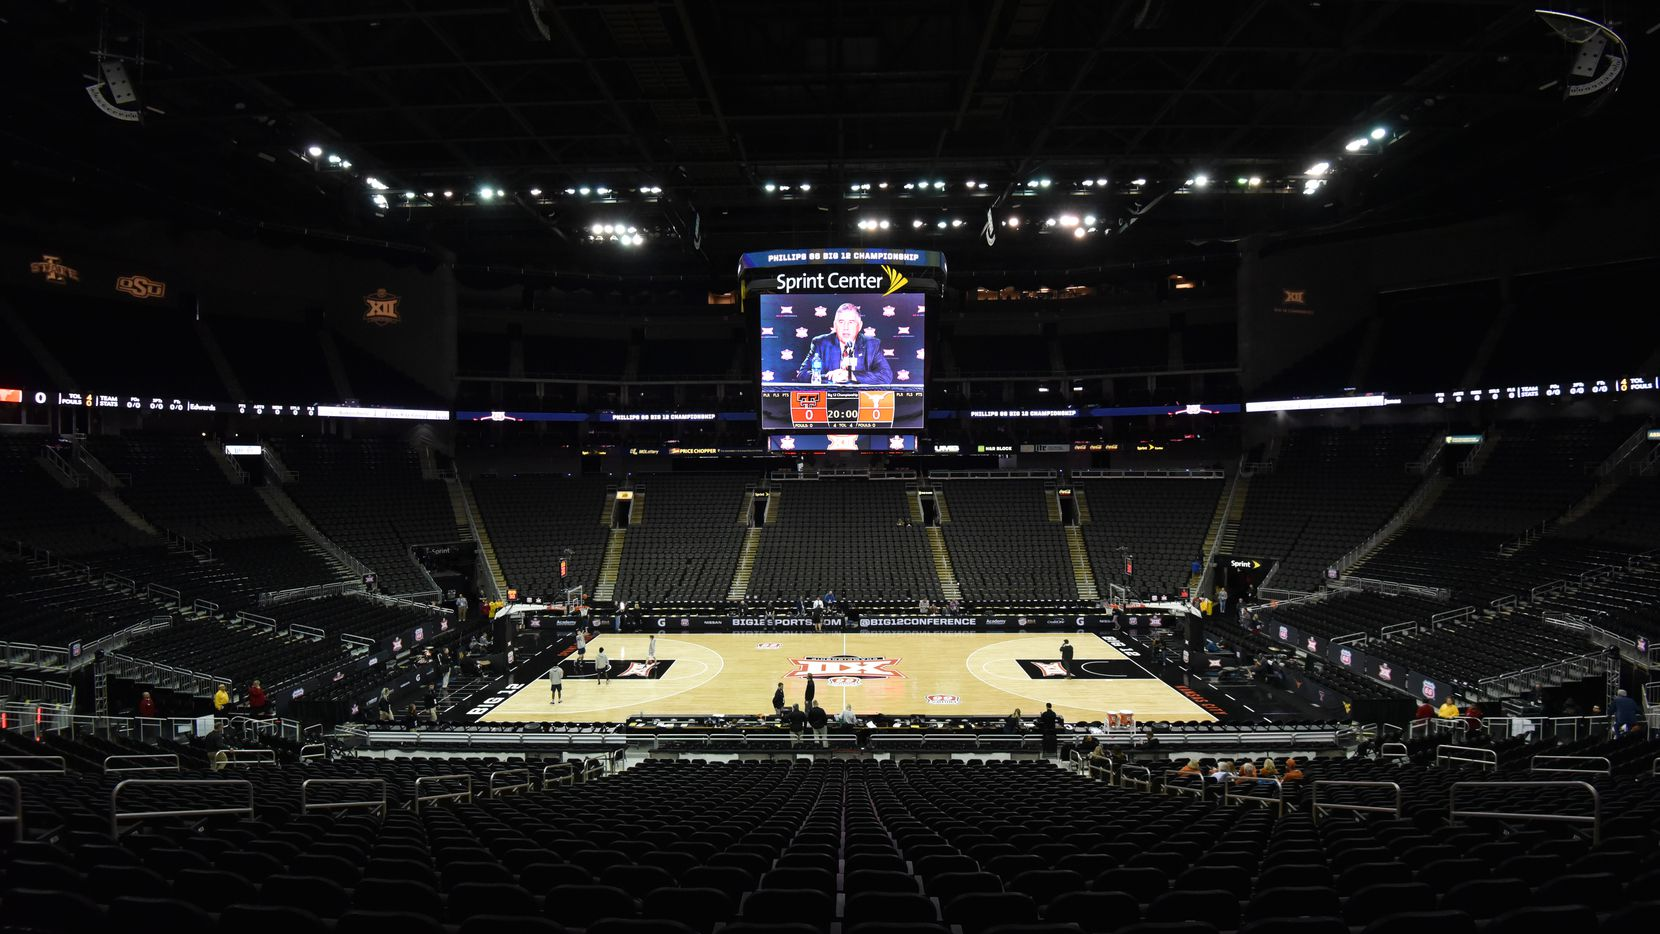 KANSAS CITY, MISSOURI - MARCH 12: Bob Bowlsby's, the commissioner of the Big 12, press conference is displayed on the scoreboard as he announces that Big 12 men's basketball tournament has been canceled due to concerns with the Coronavirus (COVID-19) outbreak at Sprint Center on March 12, 2020 in Kansas City, Missouri. (Photo by Ed Zurga/Getty Images)